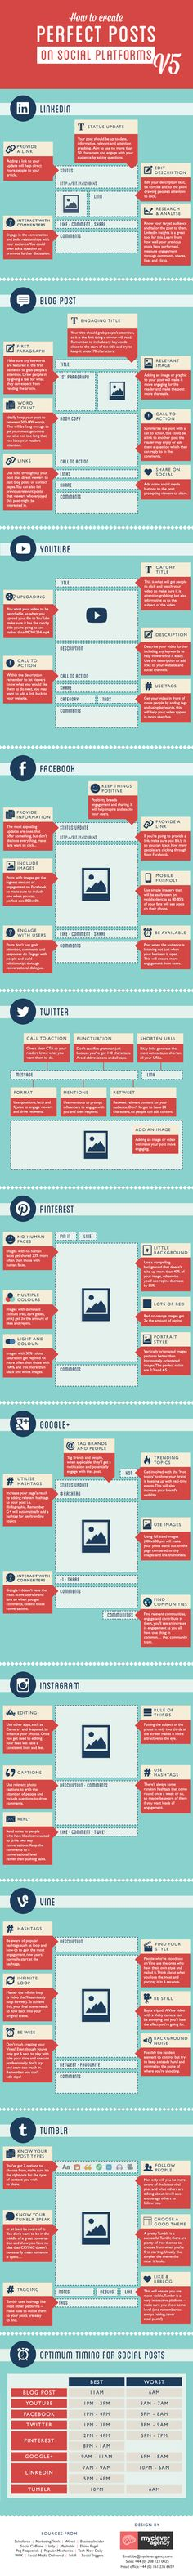 How To Create Perfect Posts [INFOGRAPHIC] -- The perfect blog posting - perfect post infographic